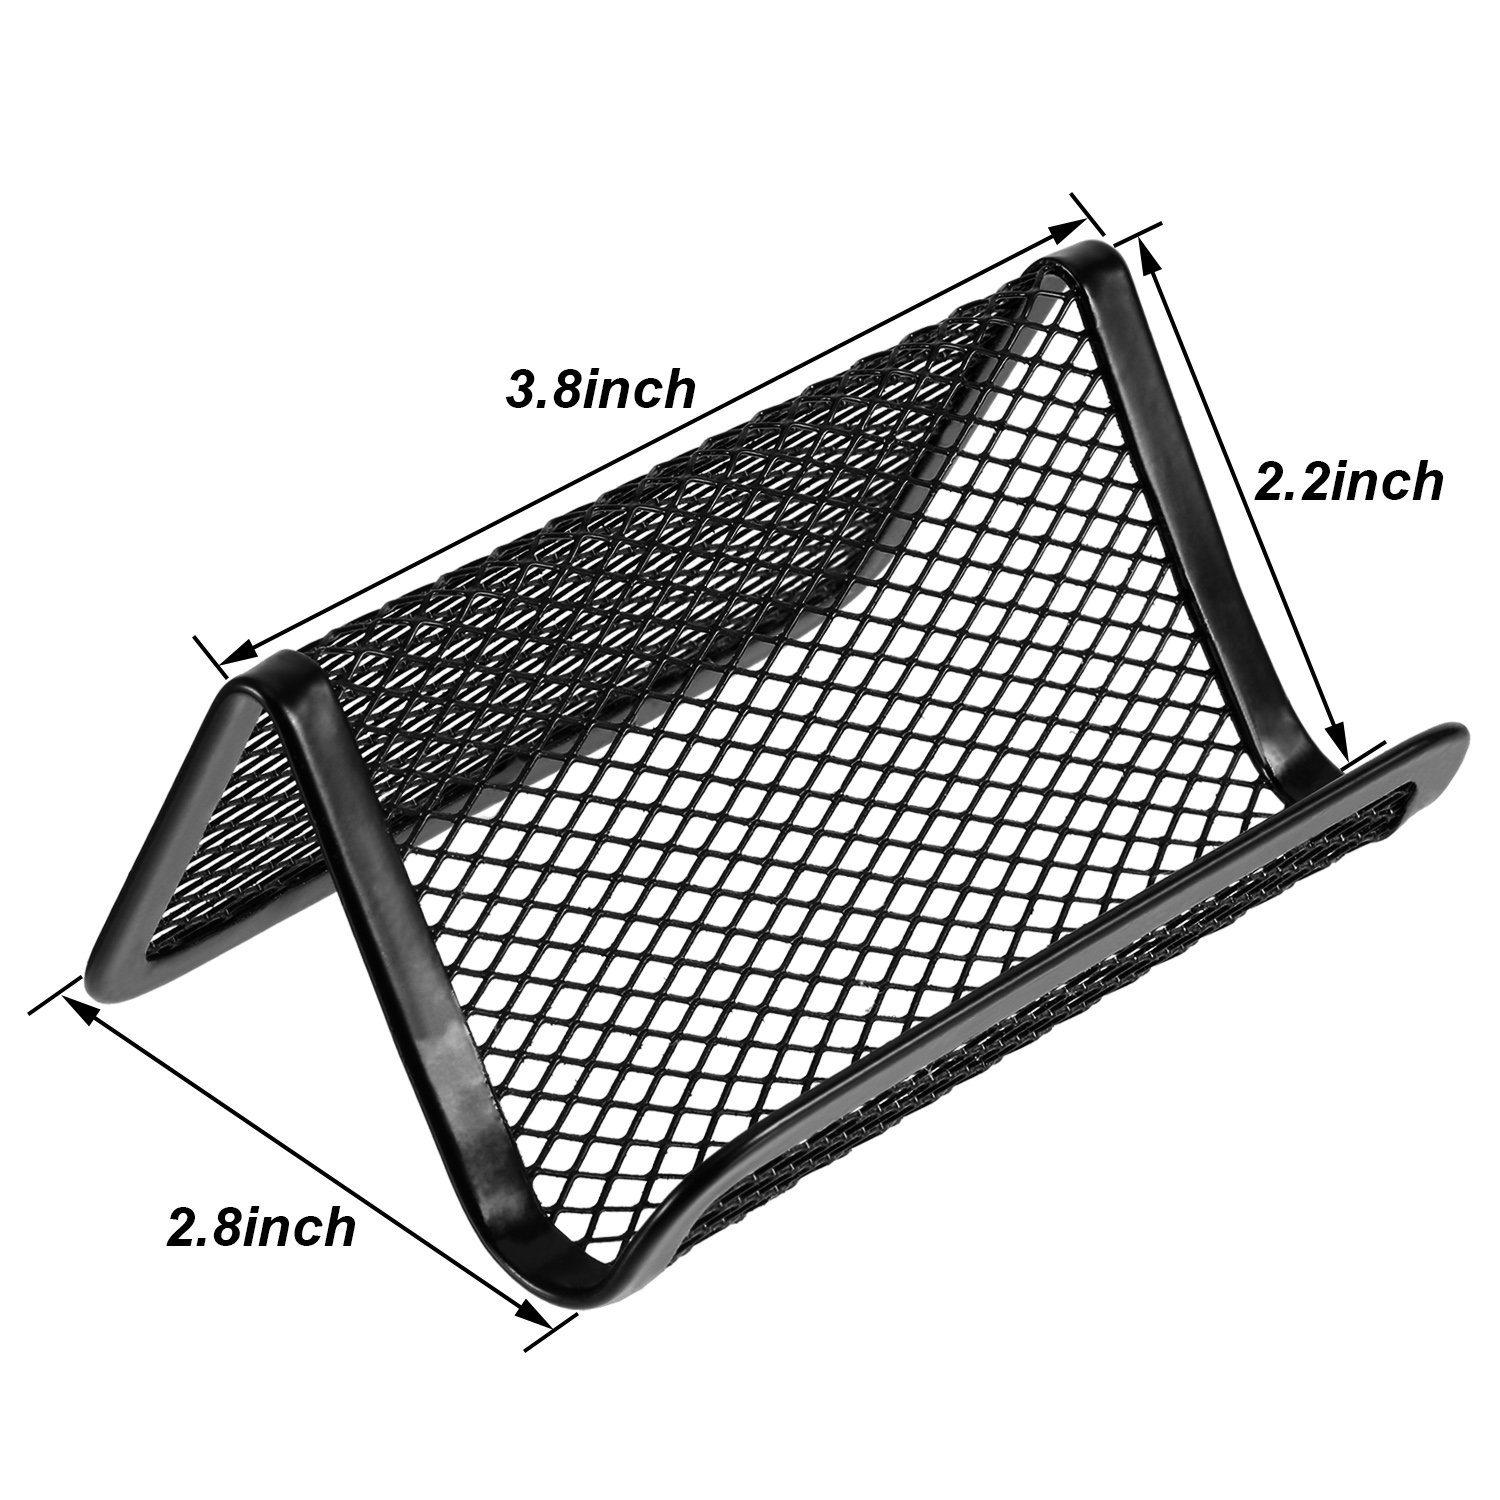 8 Pack Black Metal Mesh Business Card Holder Business Card Organizer for Office Name Card